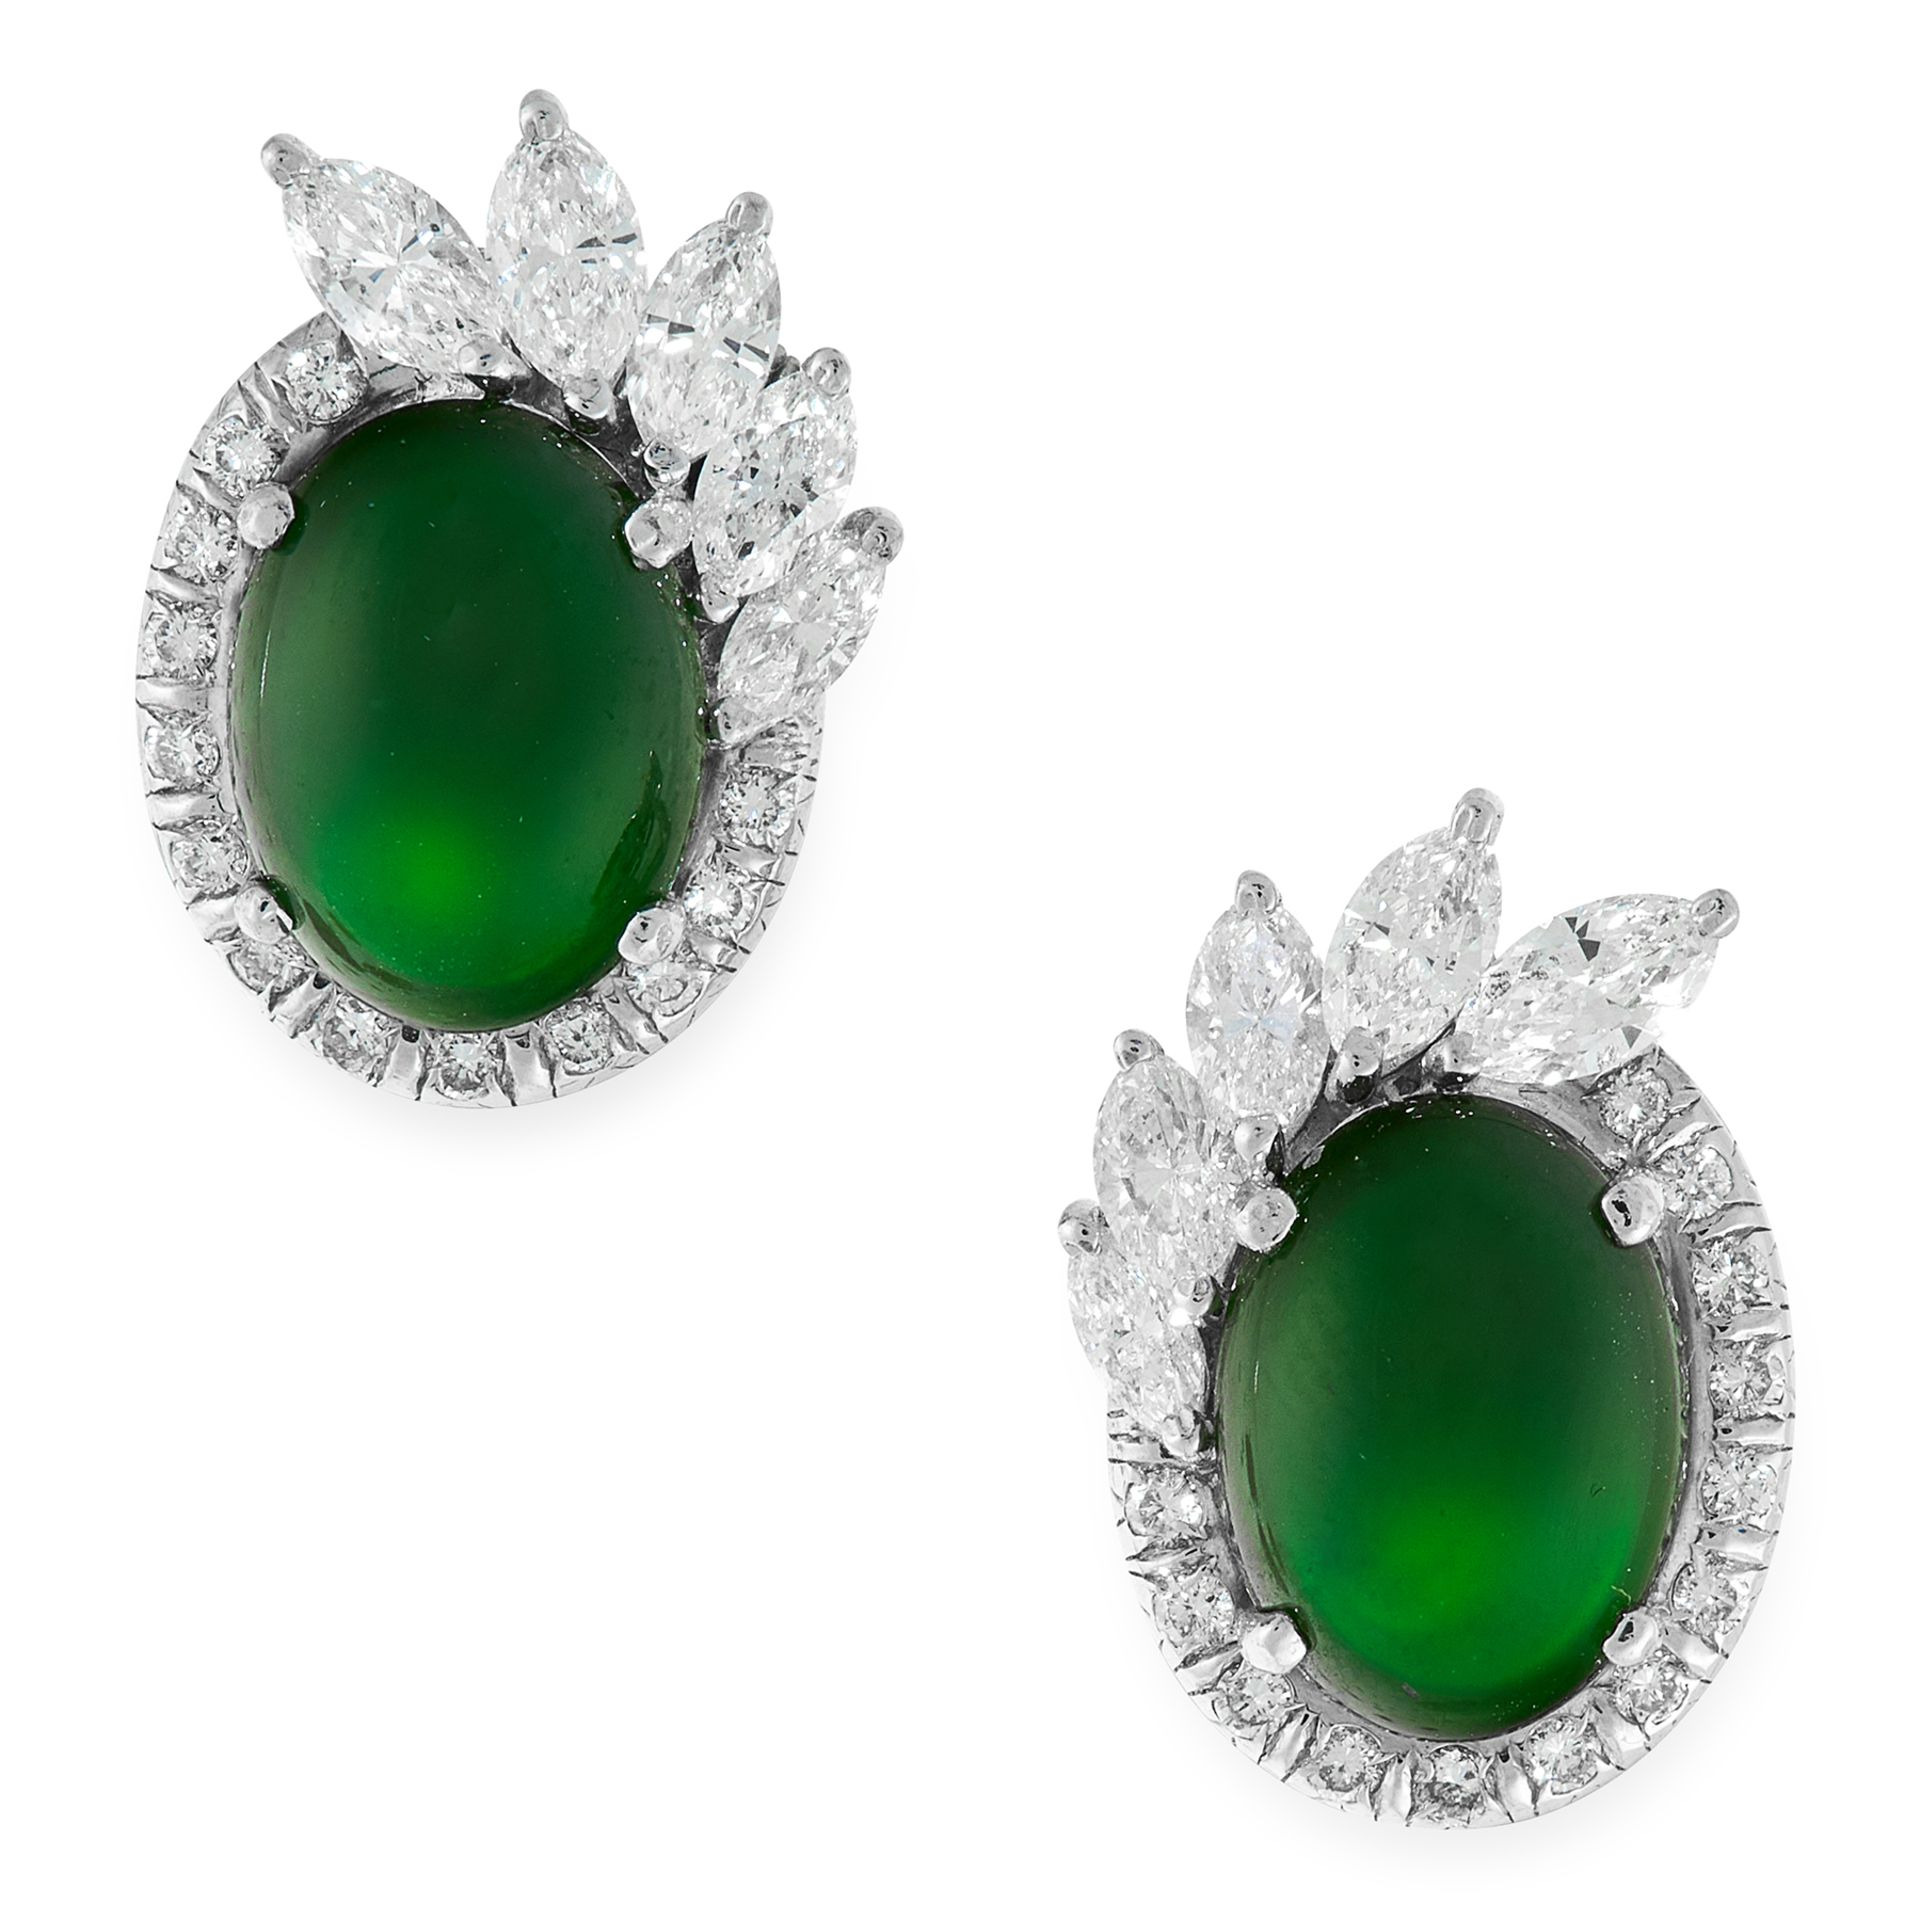 A PAIR OF IMPERIAL JADEITE JADE AND DIAMOND EARRINGS in white gold, each set with an oval jadeite